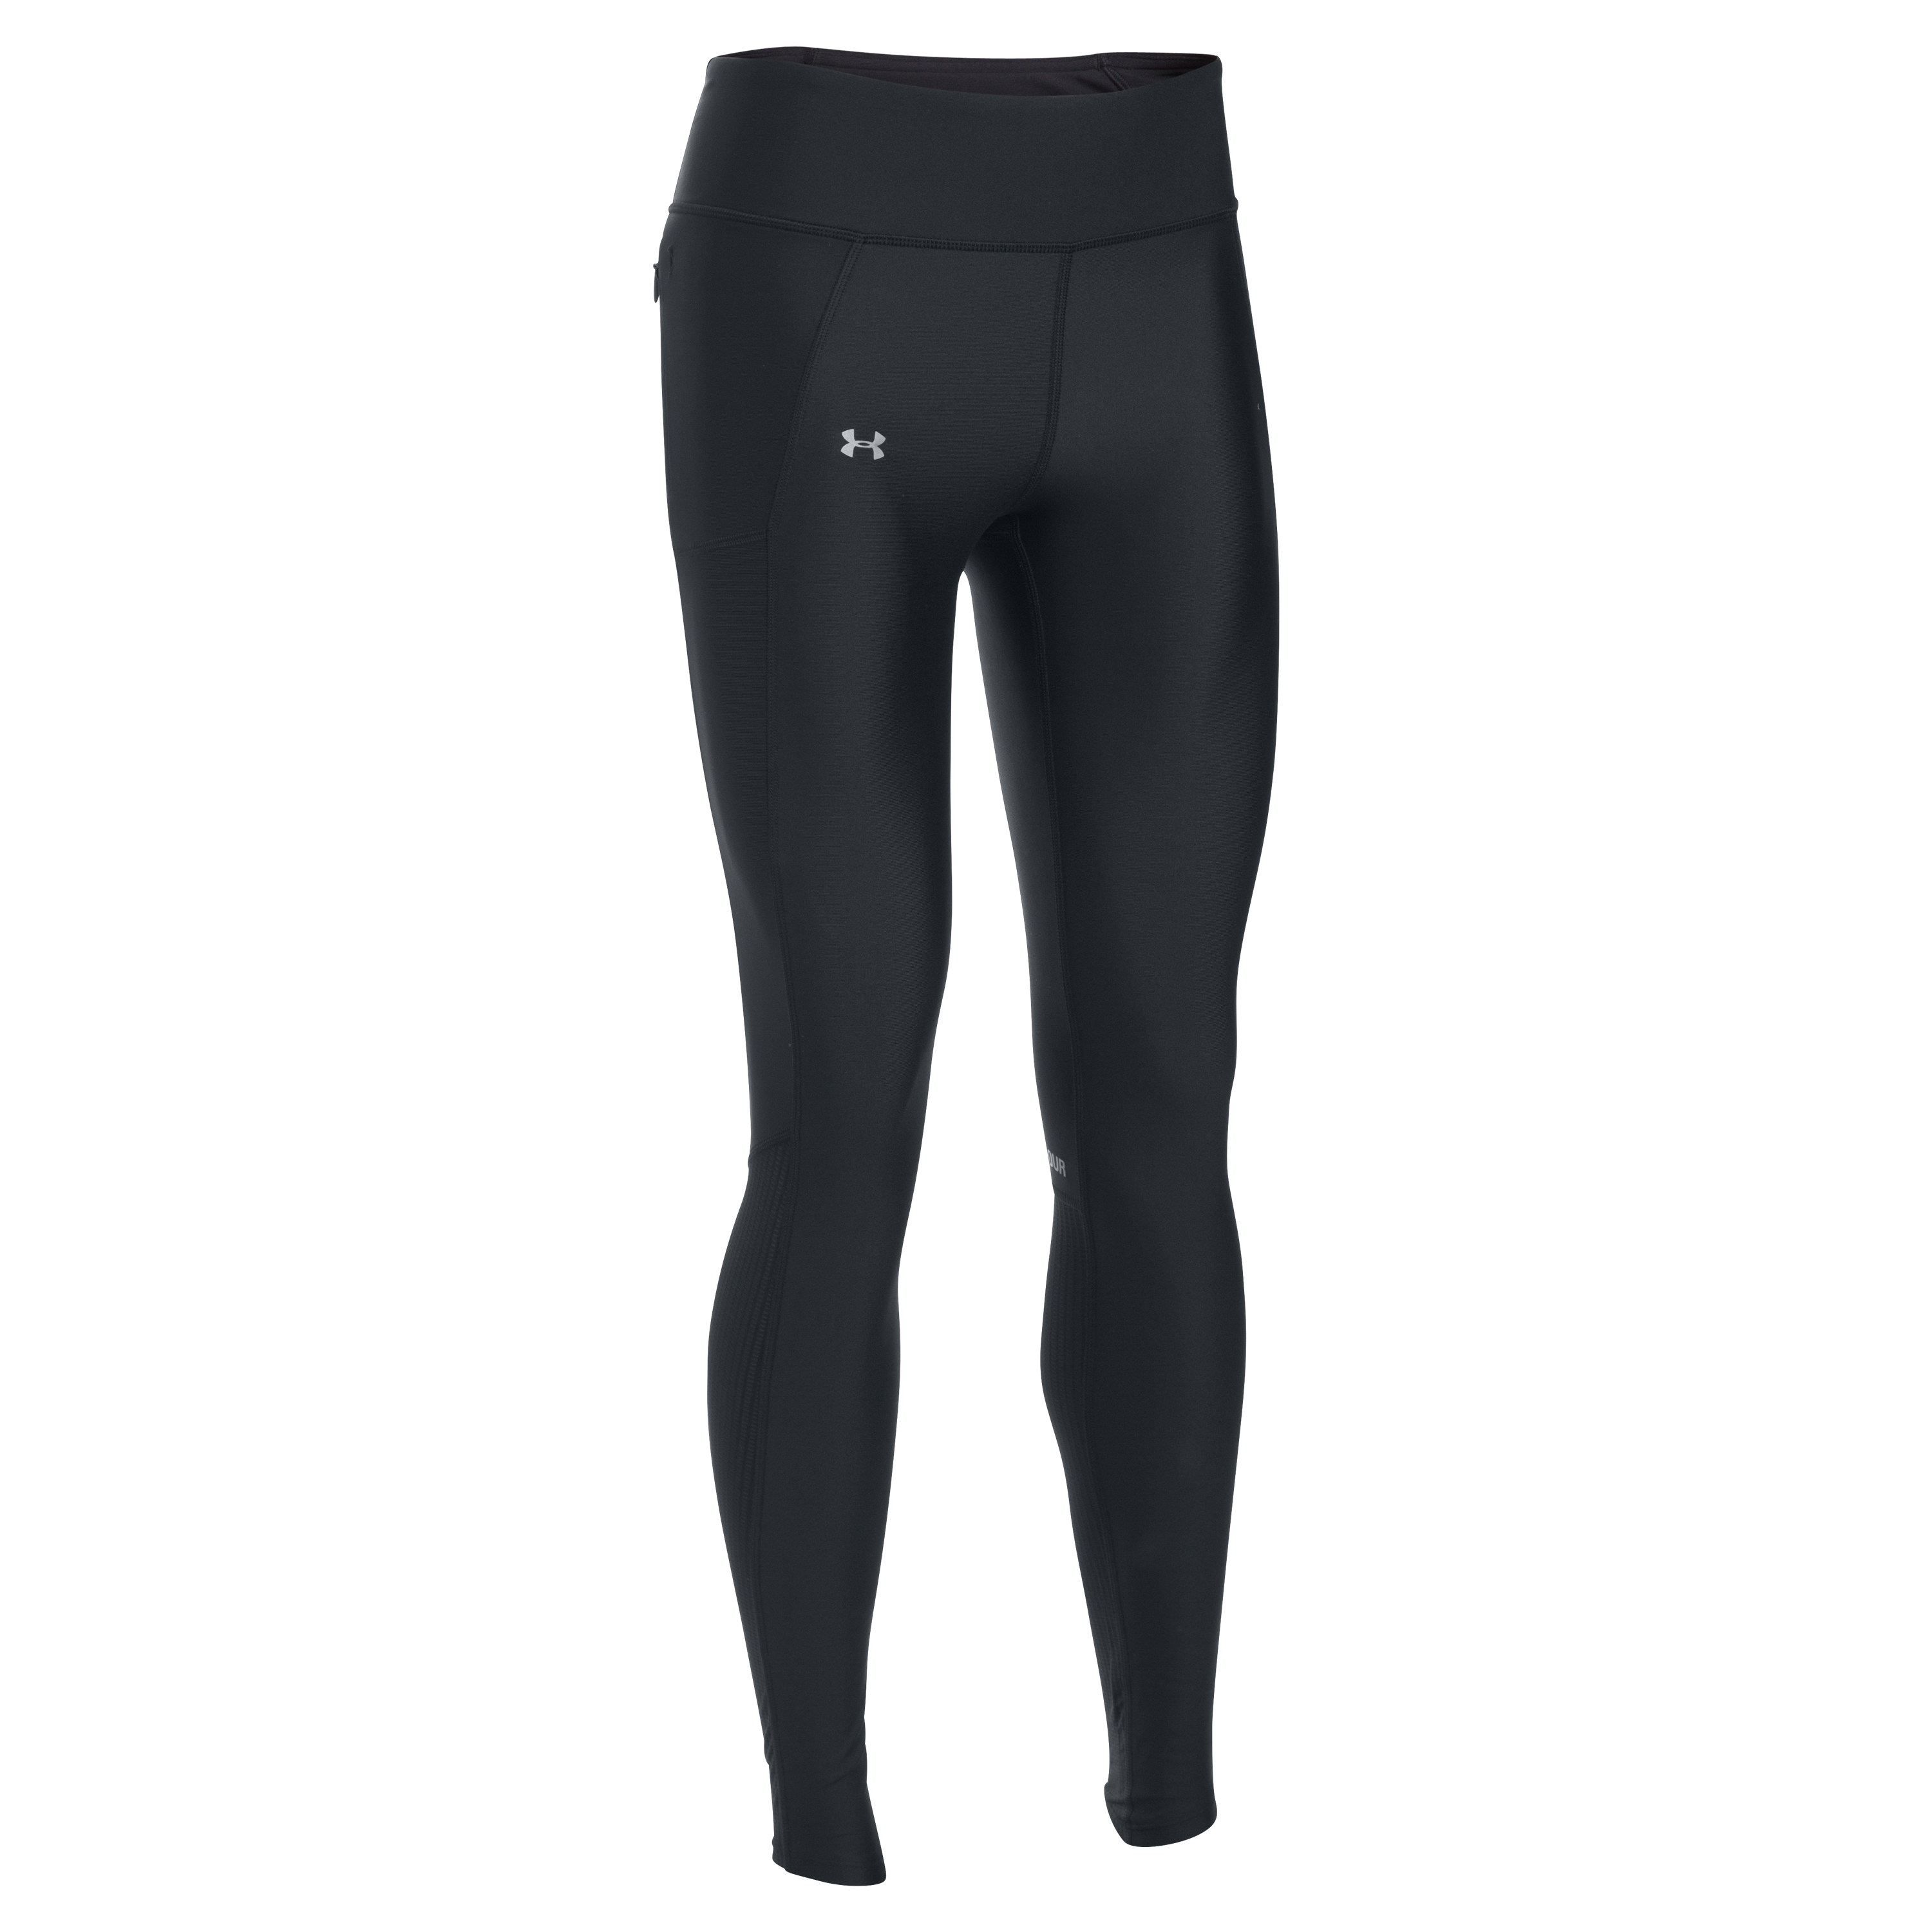 Leggings pour femmes Fly By Under Armour noirs